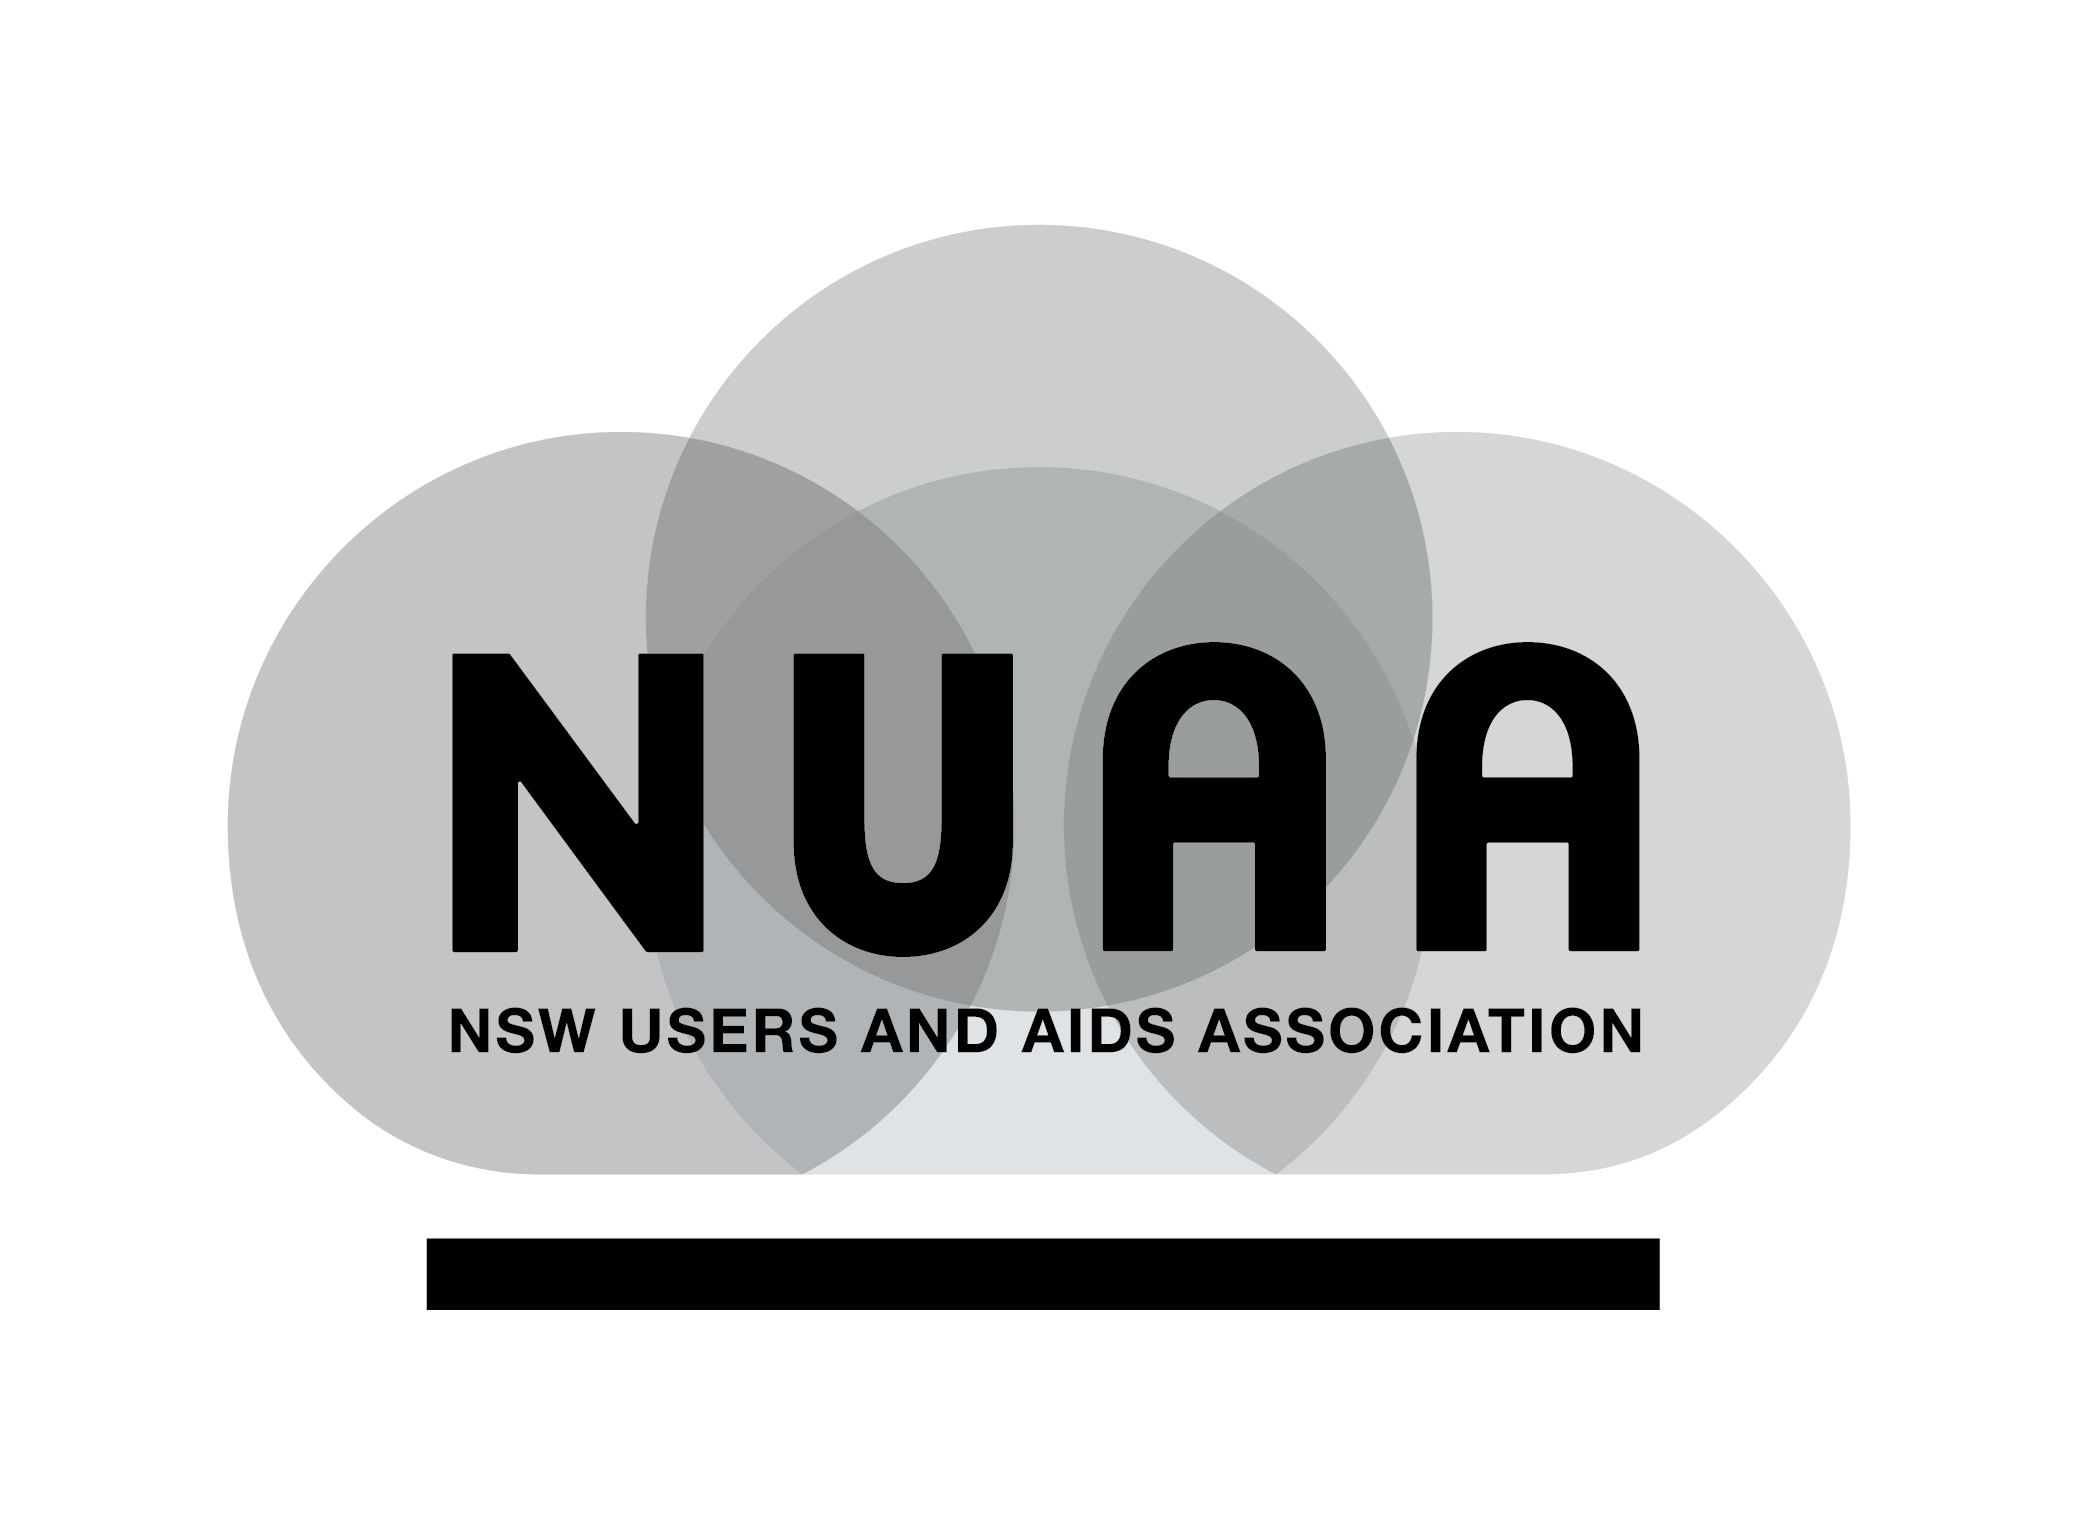 NUAA_Black Text on Greyscale for Lighter.png